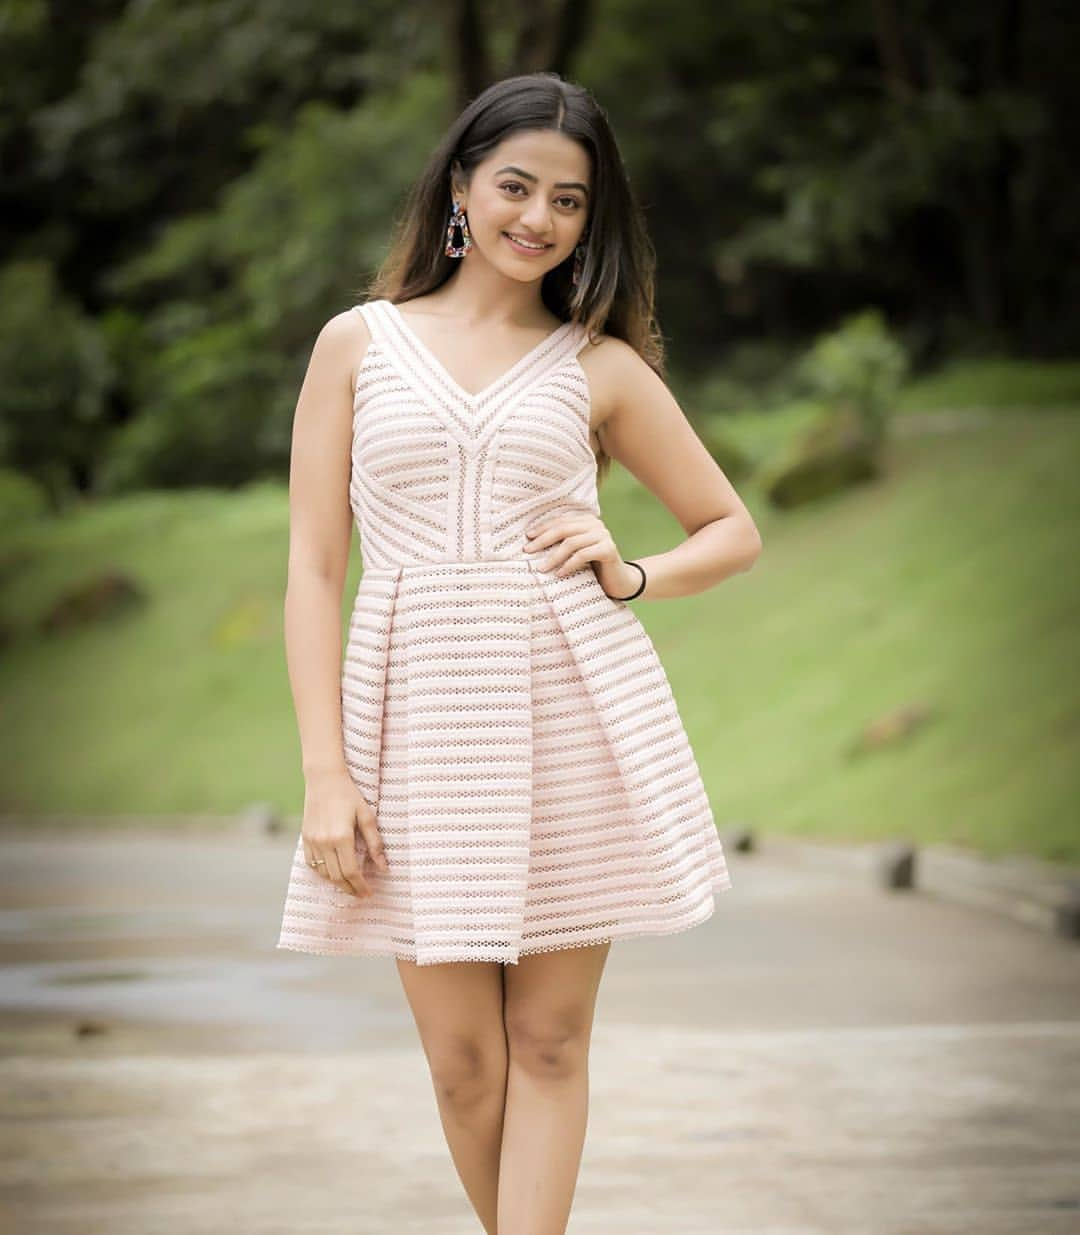 Helly Shah Age, Photos, Biography, Religion, Awards, Family, Height, Birthday, Boyfriend, Net Worth, Education, Instagram, Twitter, Facebook, Wiki, Imdb (29)